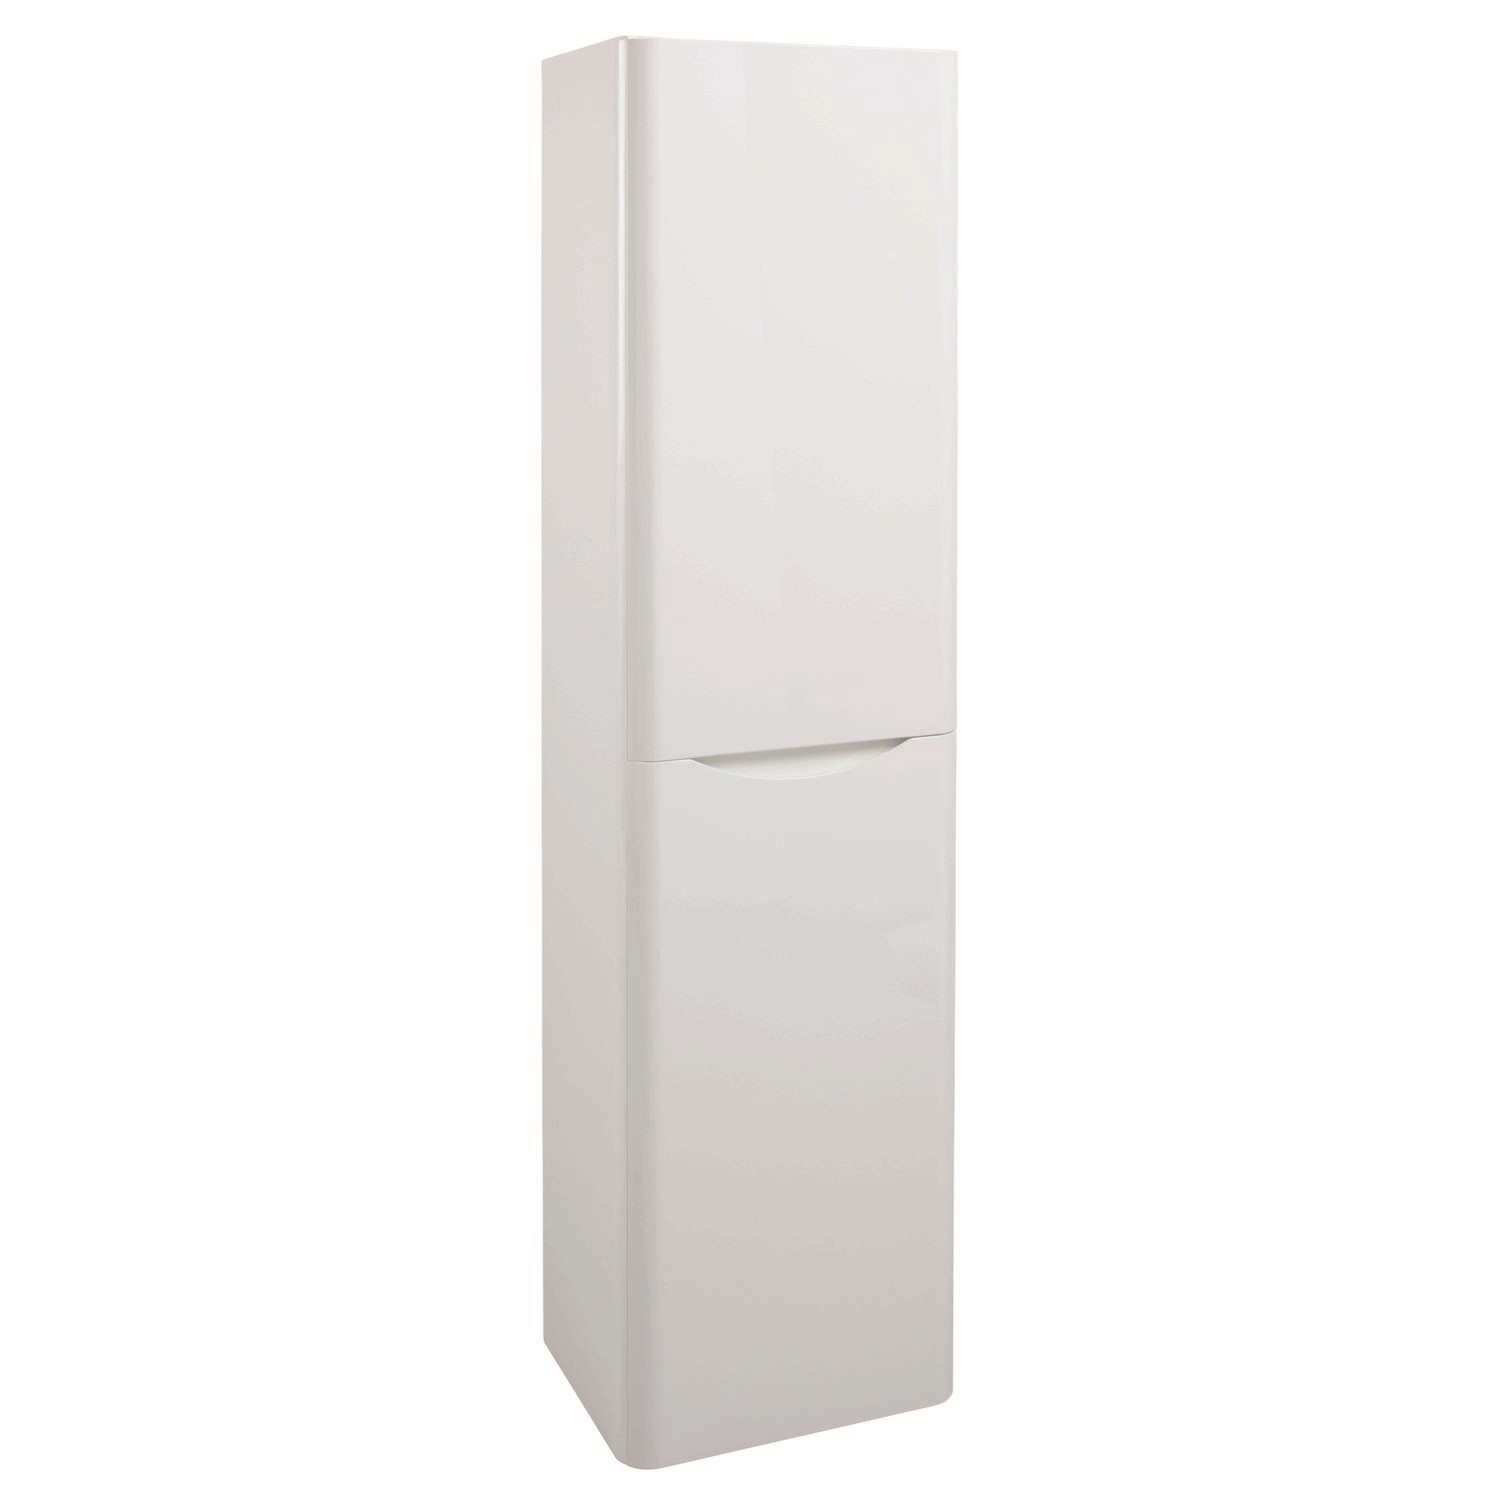 Fabulous White Wall Hung Tall Bathroom Storage Cabinet W400 X H1500Mm Home Interior And Landscaping Ologienasavecom